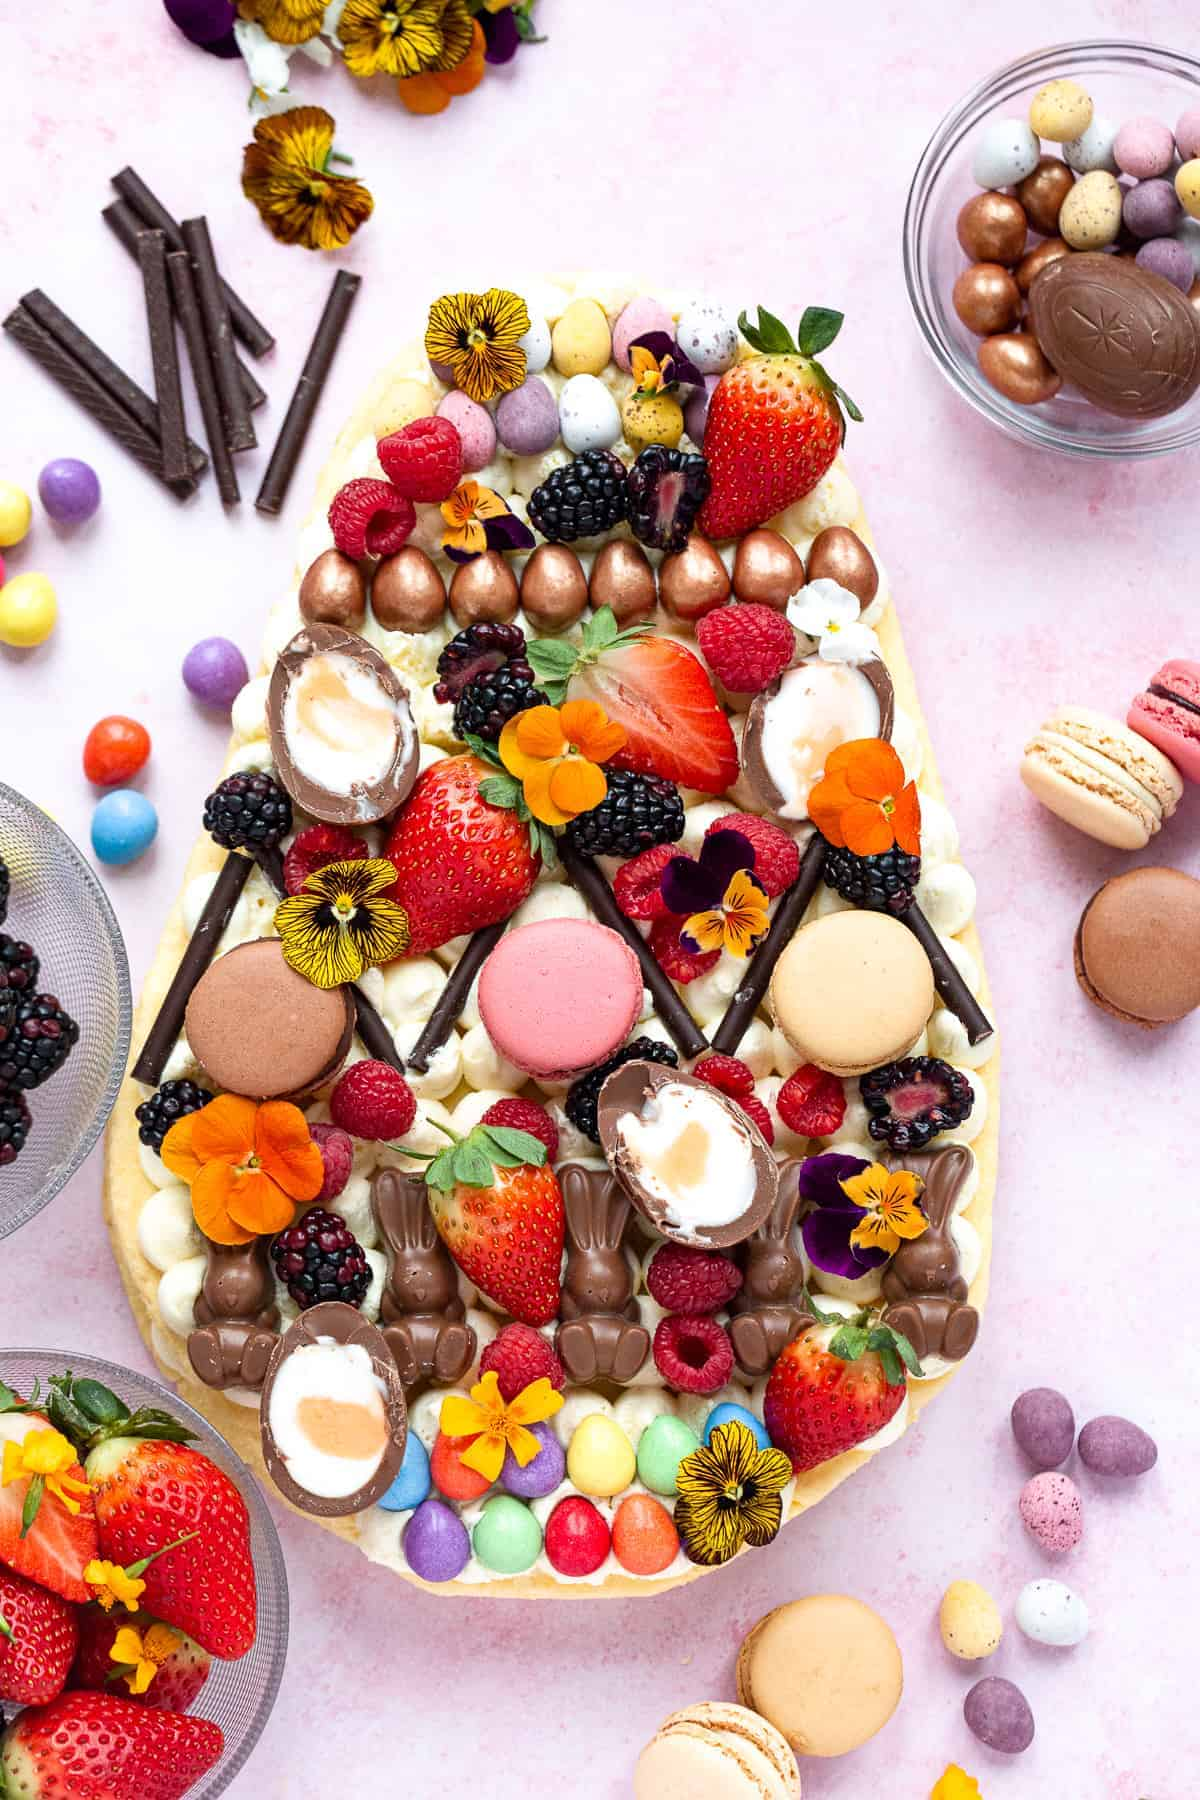 An Easter cookie cake in the shape of a giant Easter egg. It's covered with Easter chocolate, macarons, fresh fruit and edible flowers.